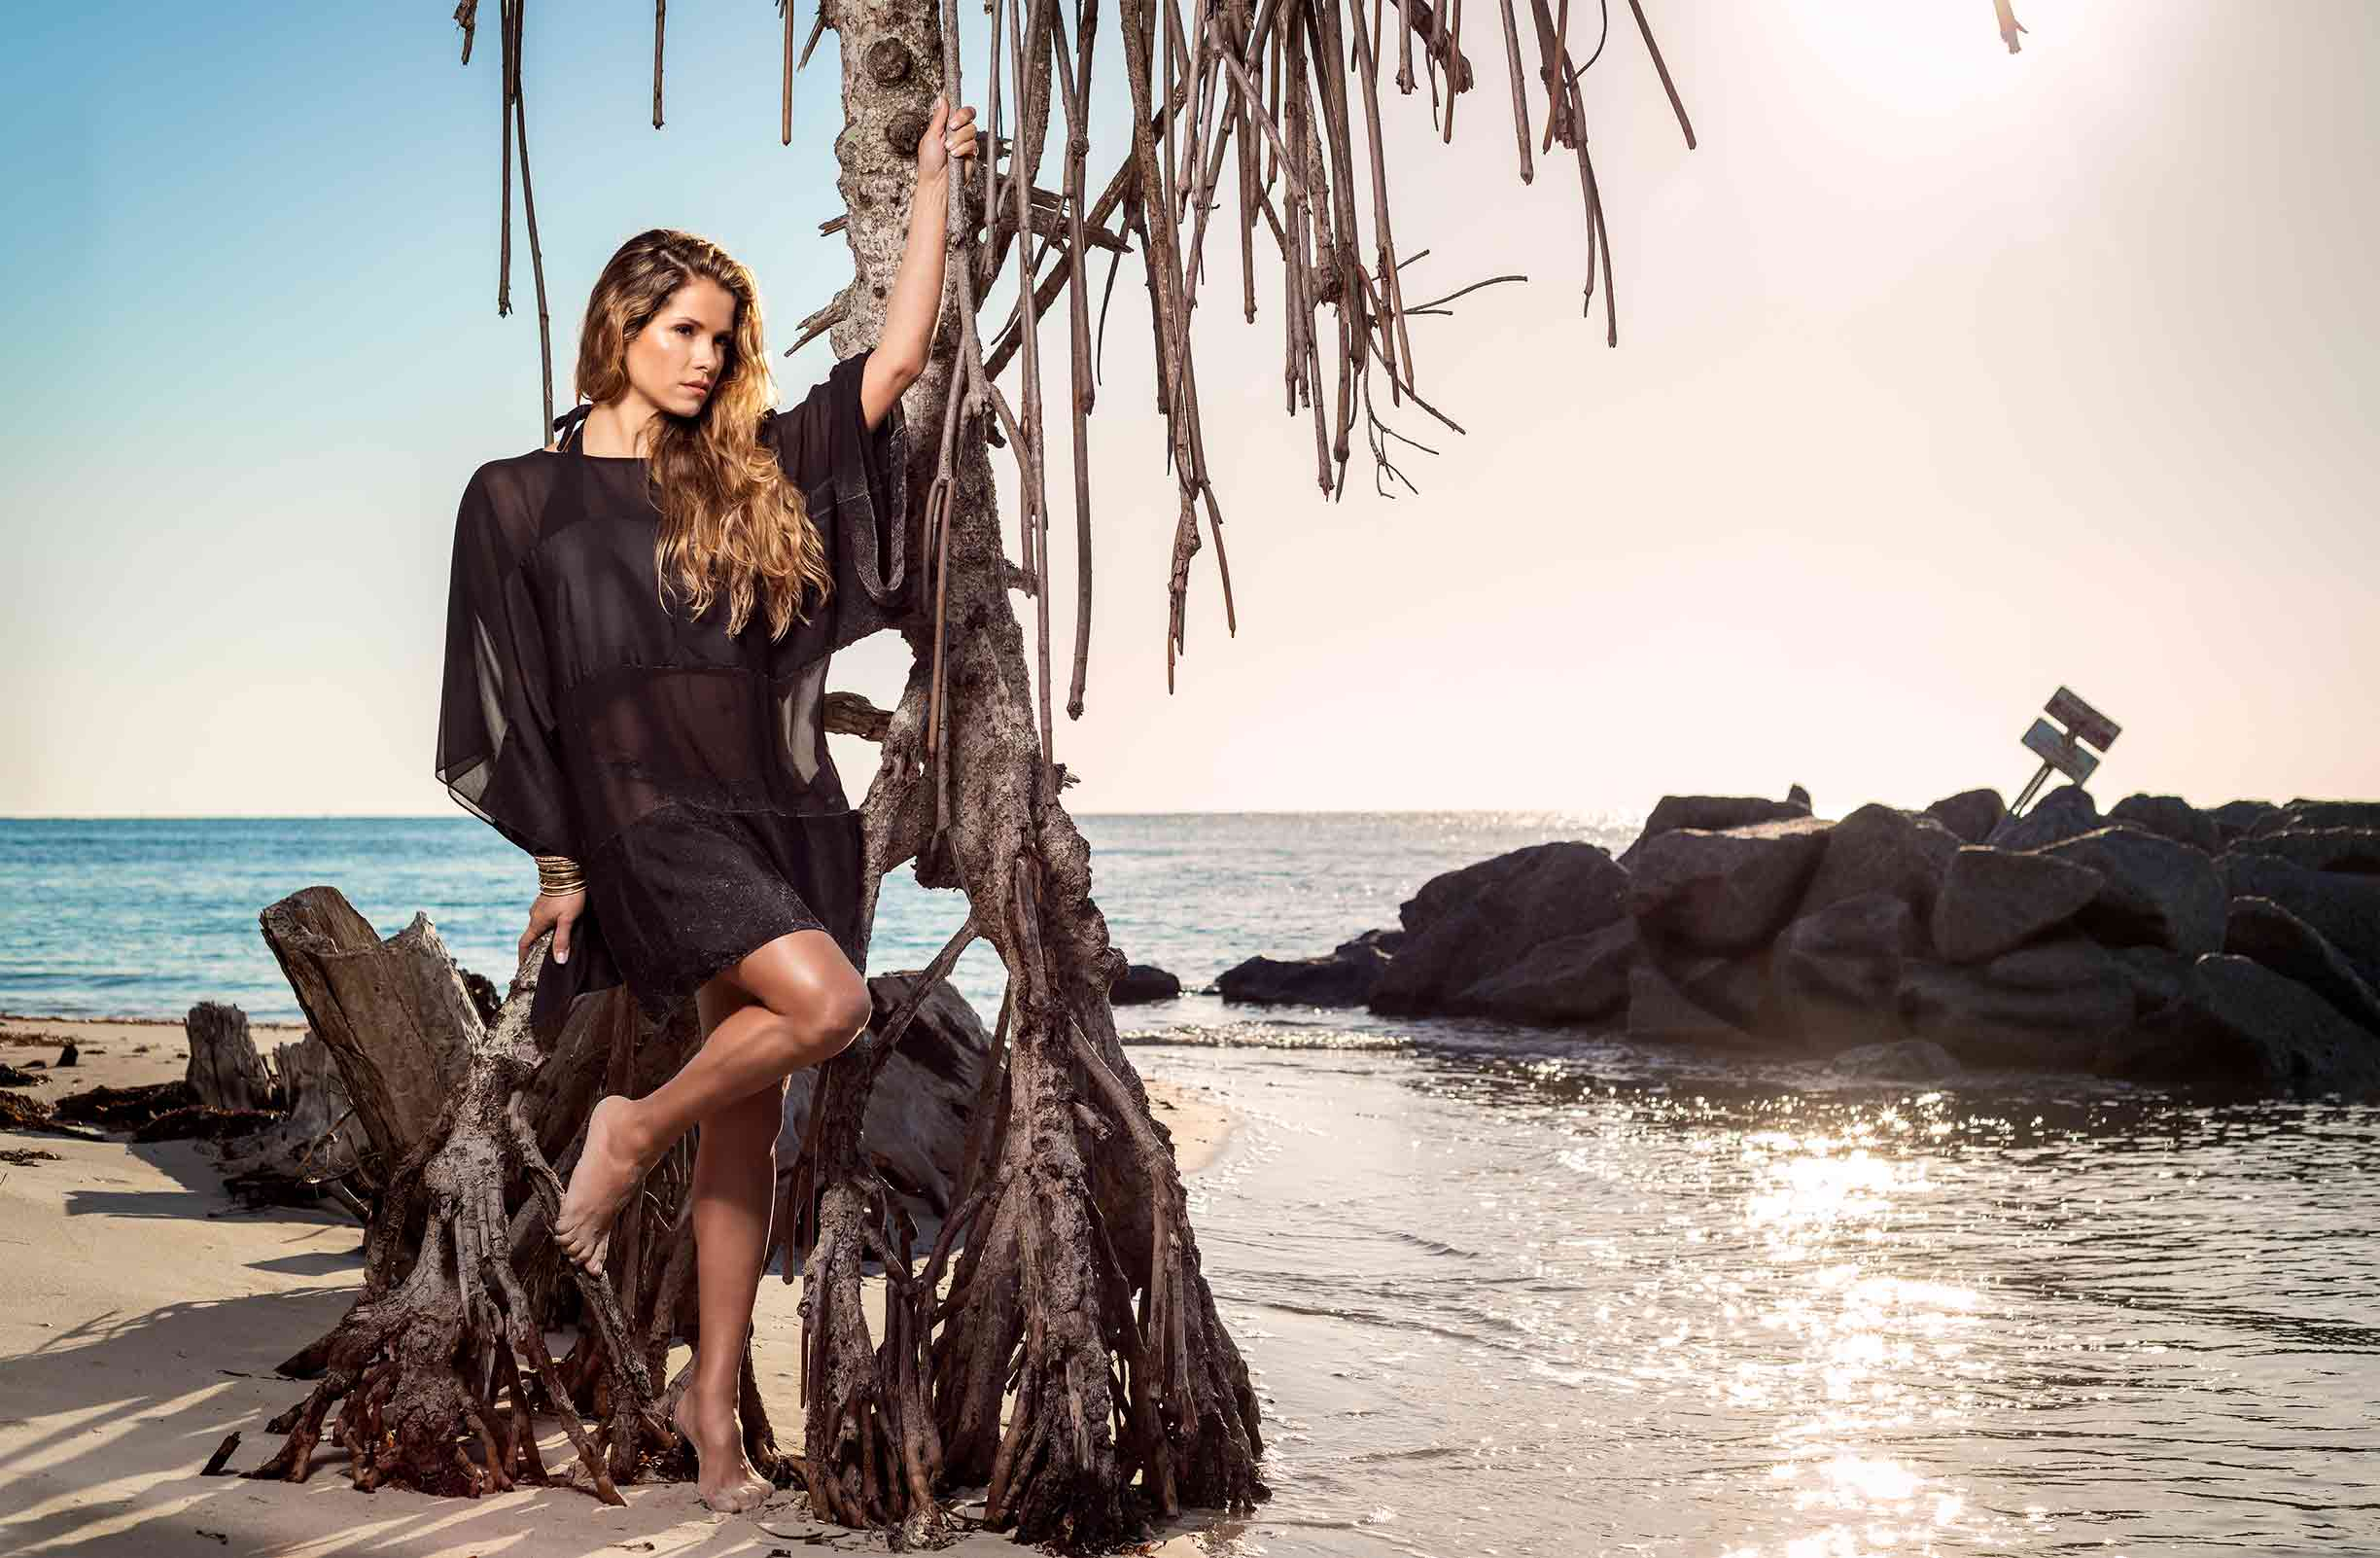 Waiting for dawn | RobyFabro Miami fashion photographer